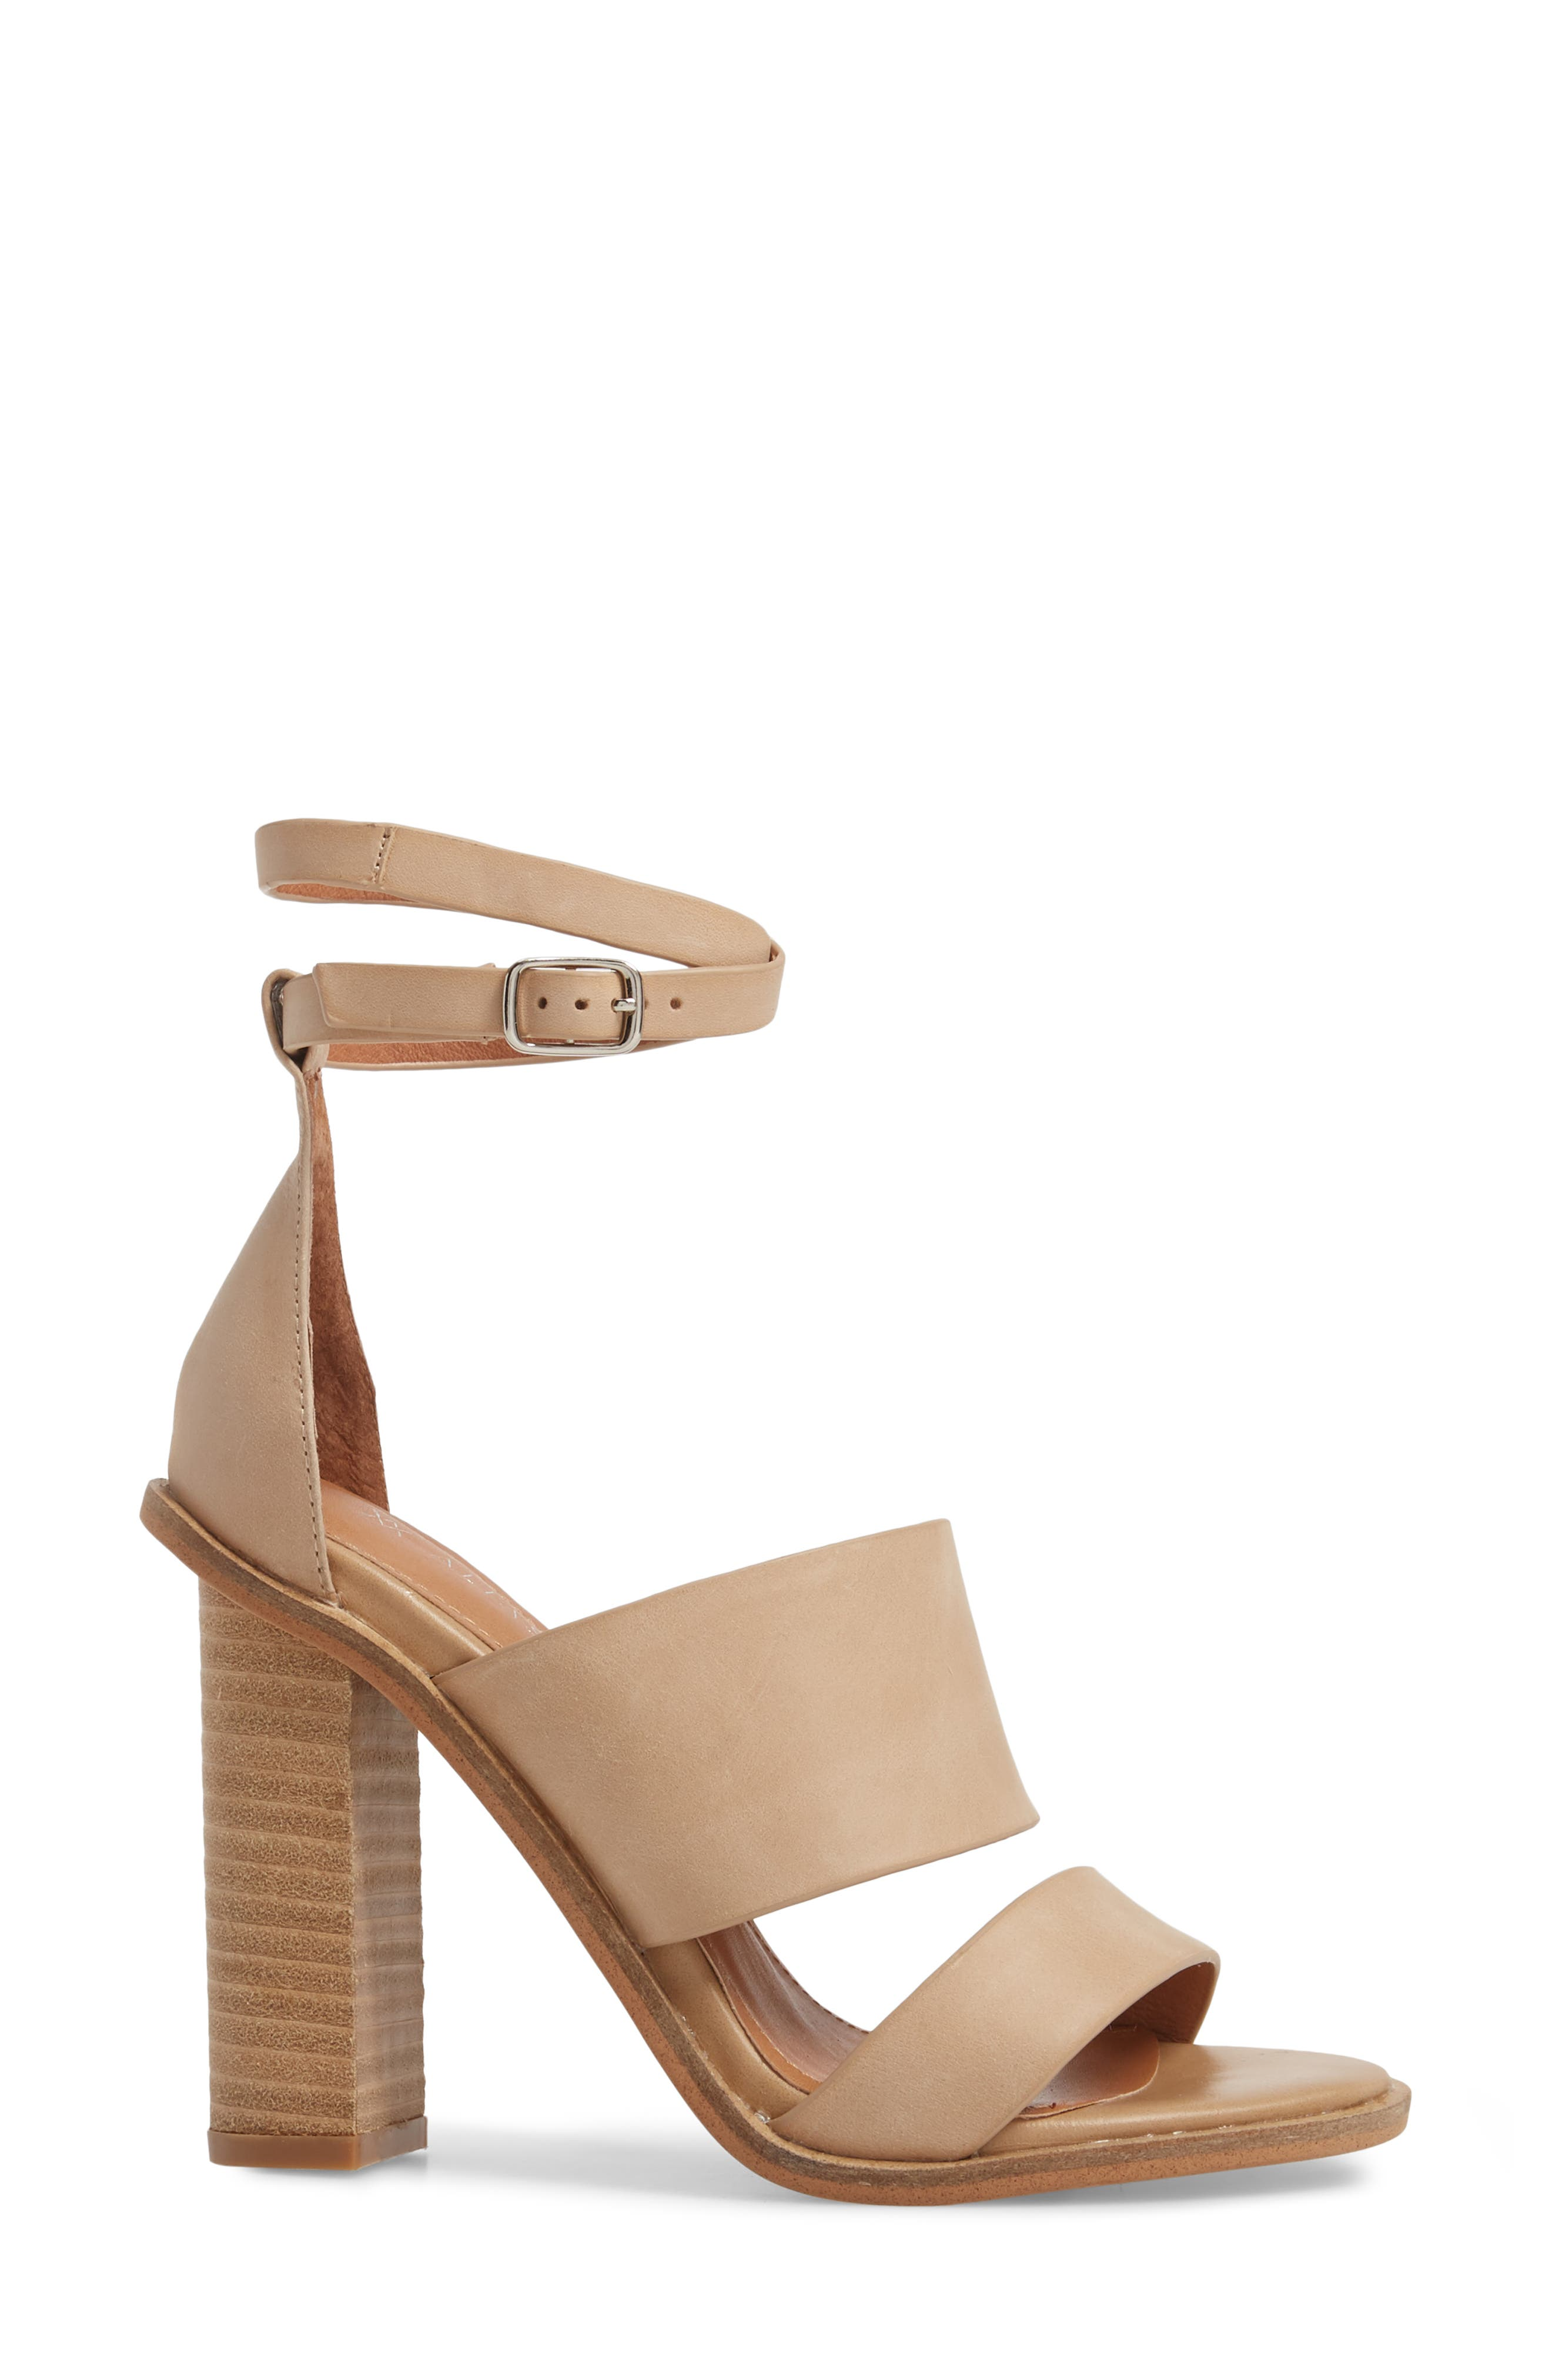 Admiral Ankle Wrap Sandal,                             Alternate thumbnail 3, color,                             Natural Leather